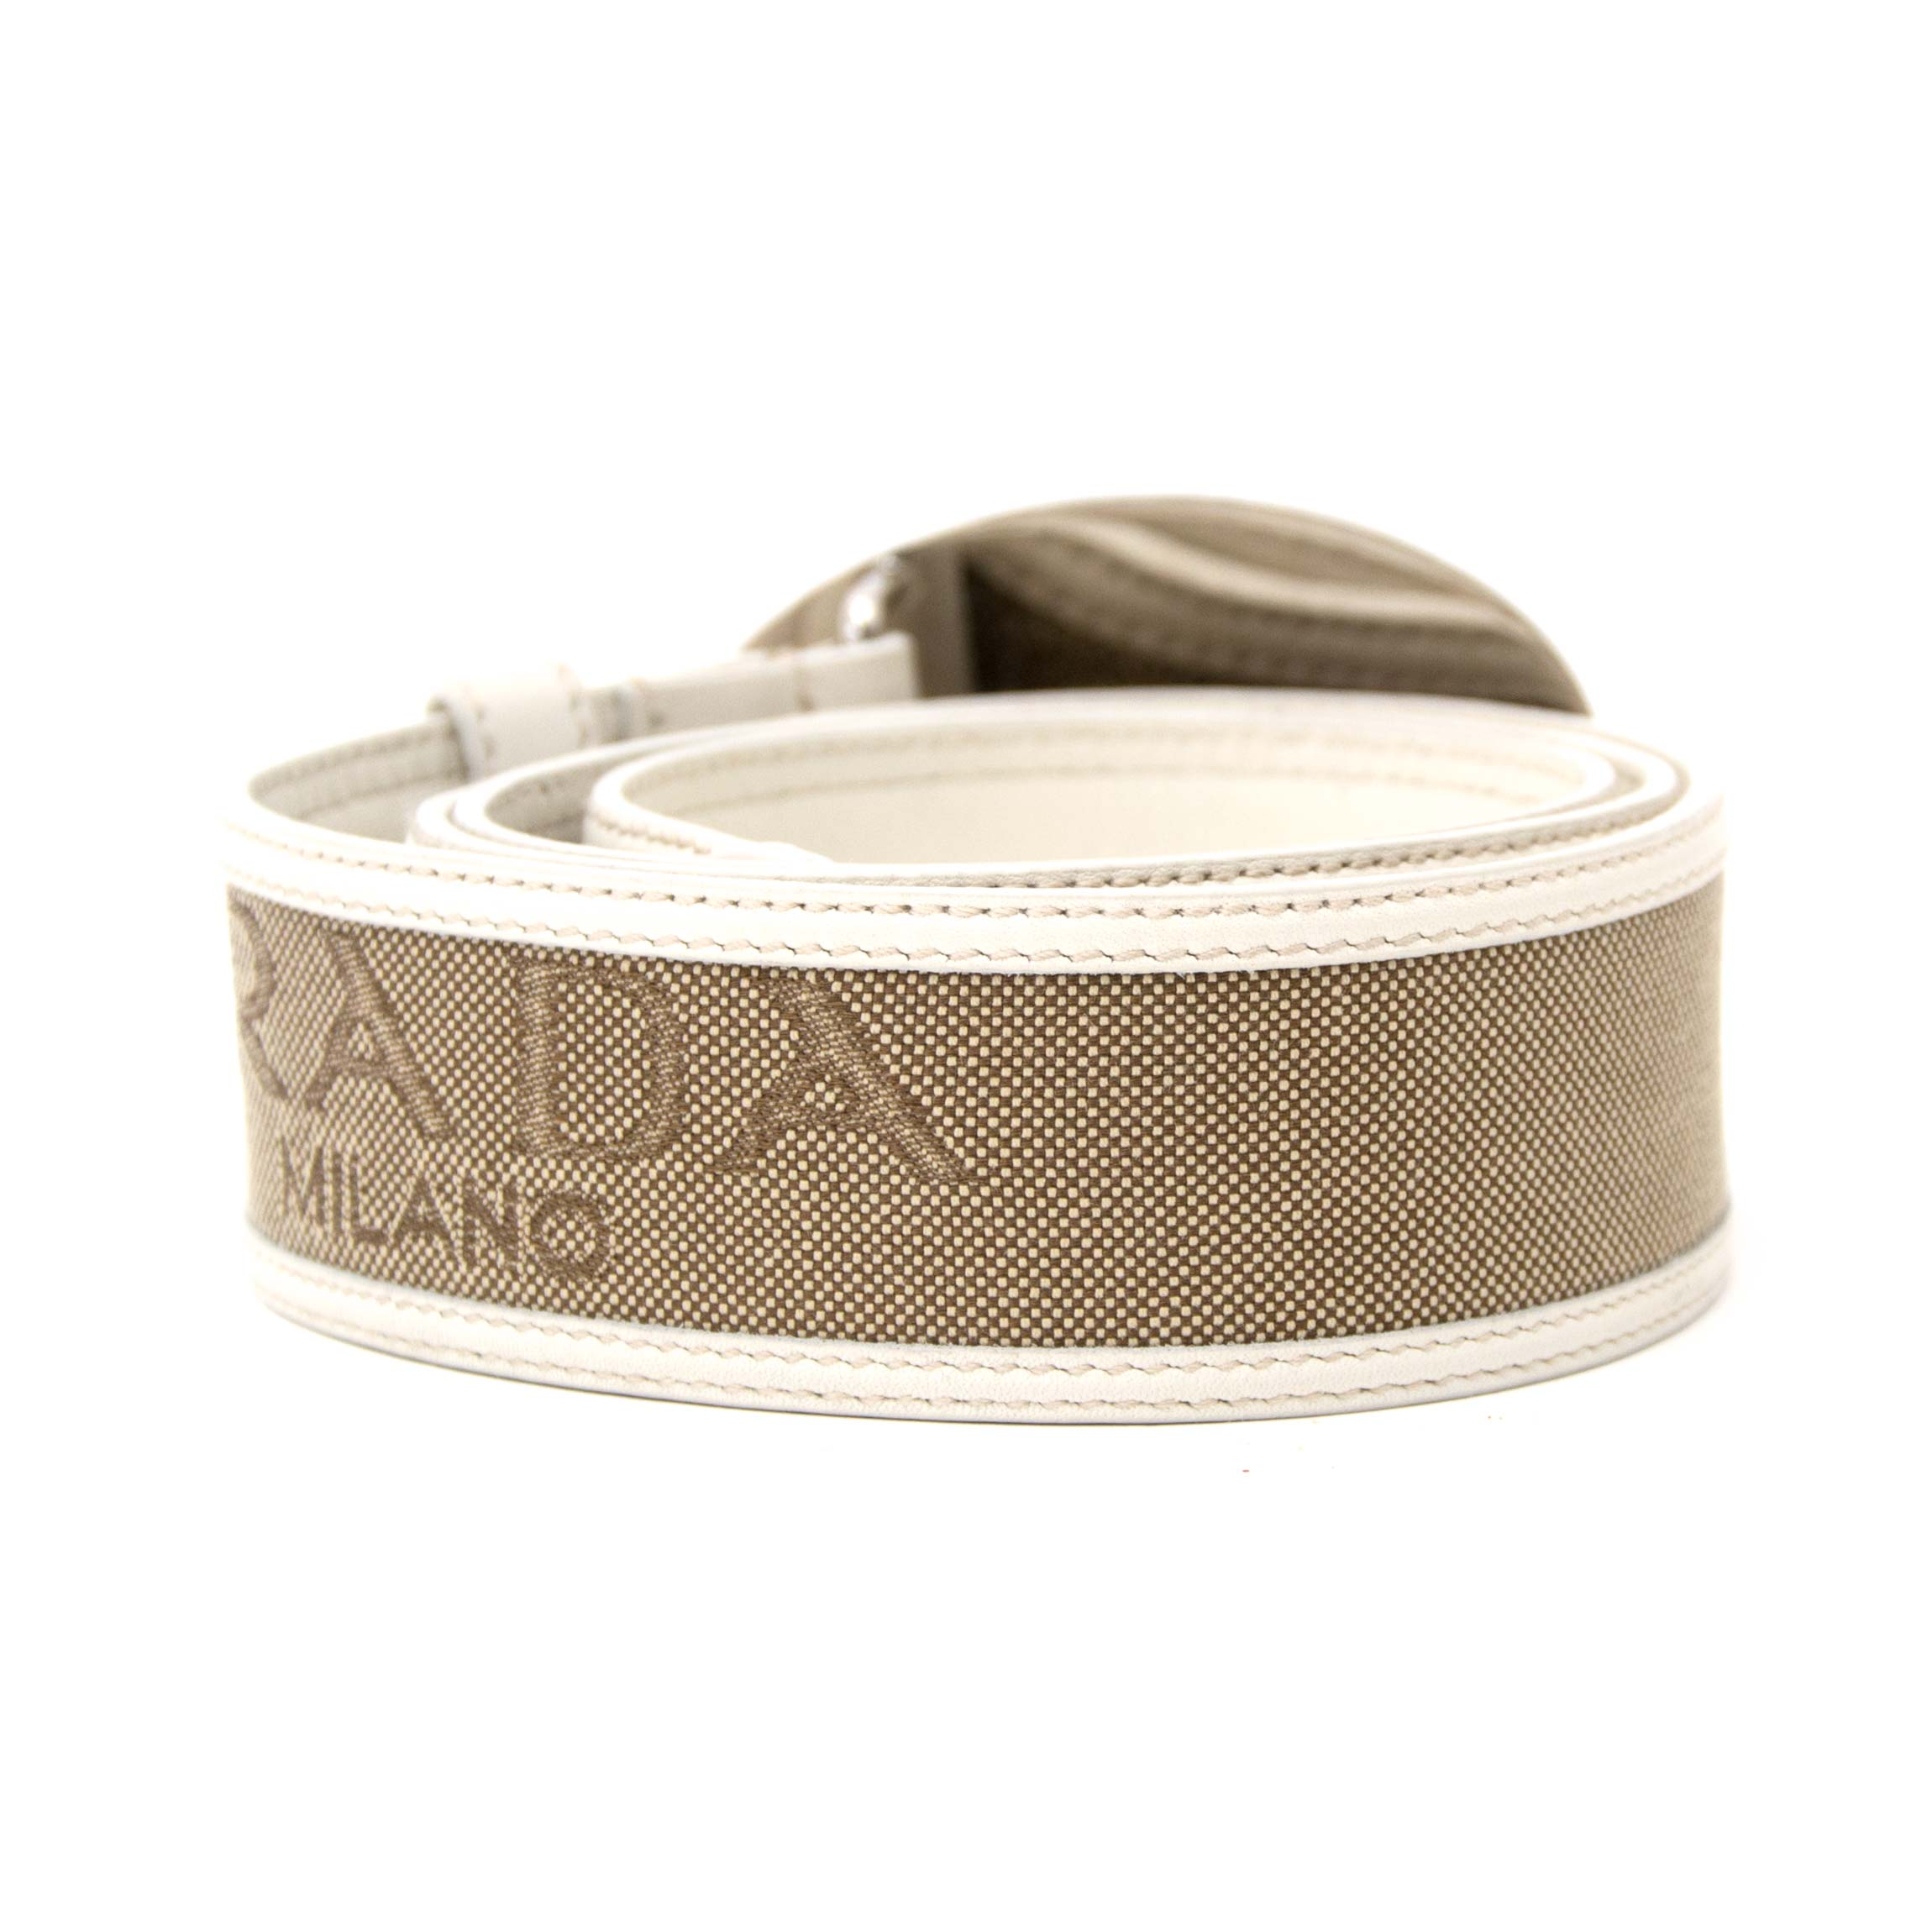 Prada Logo Belt for sale, www.labellov.com, worldwide shipping and secure shopping.